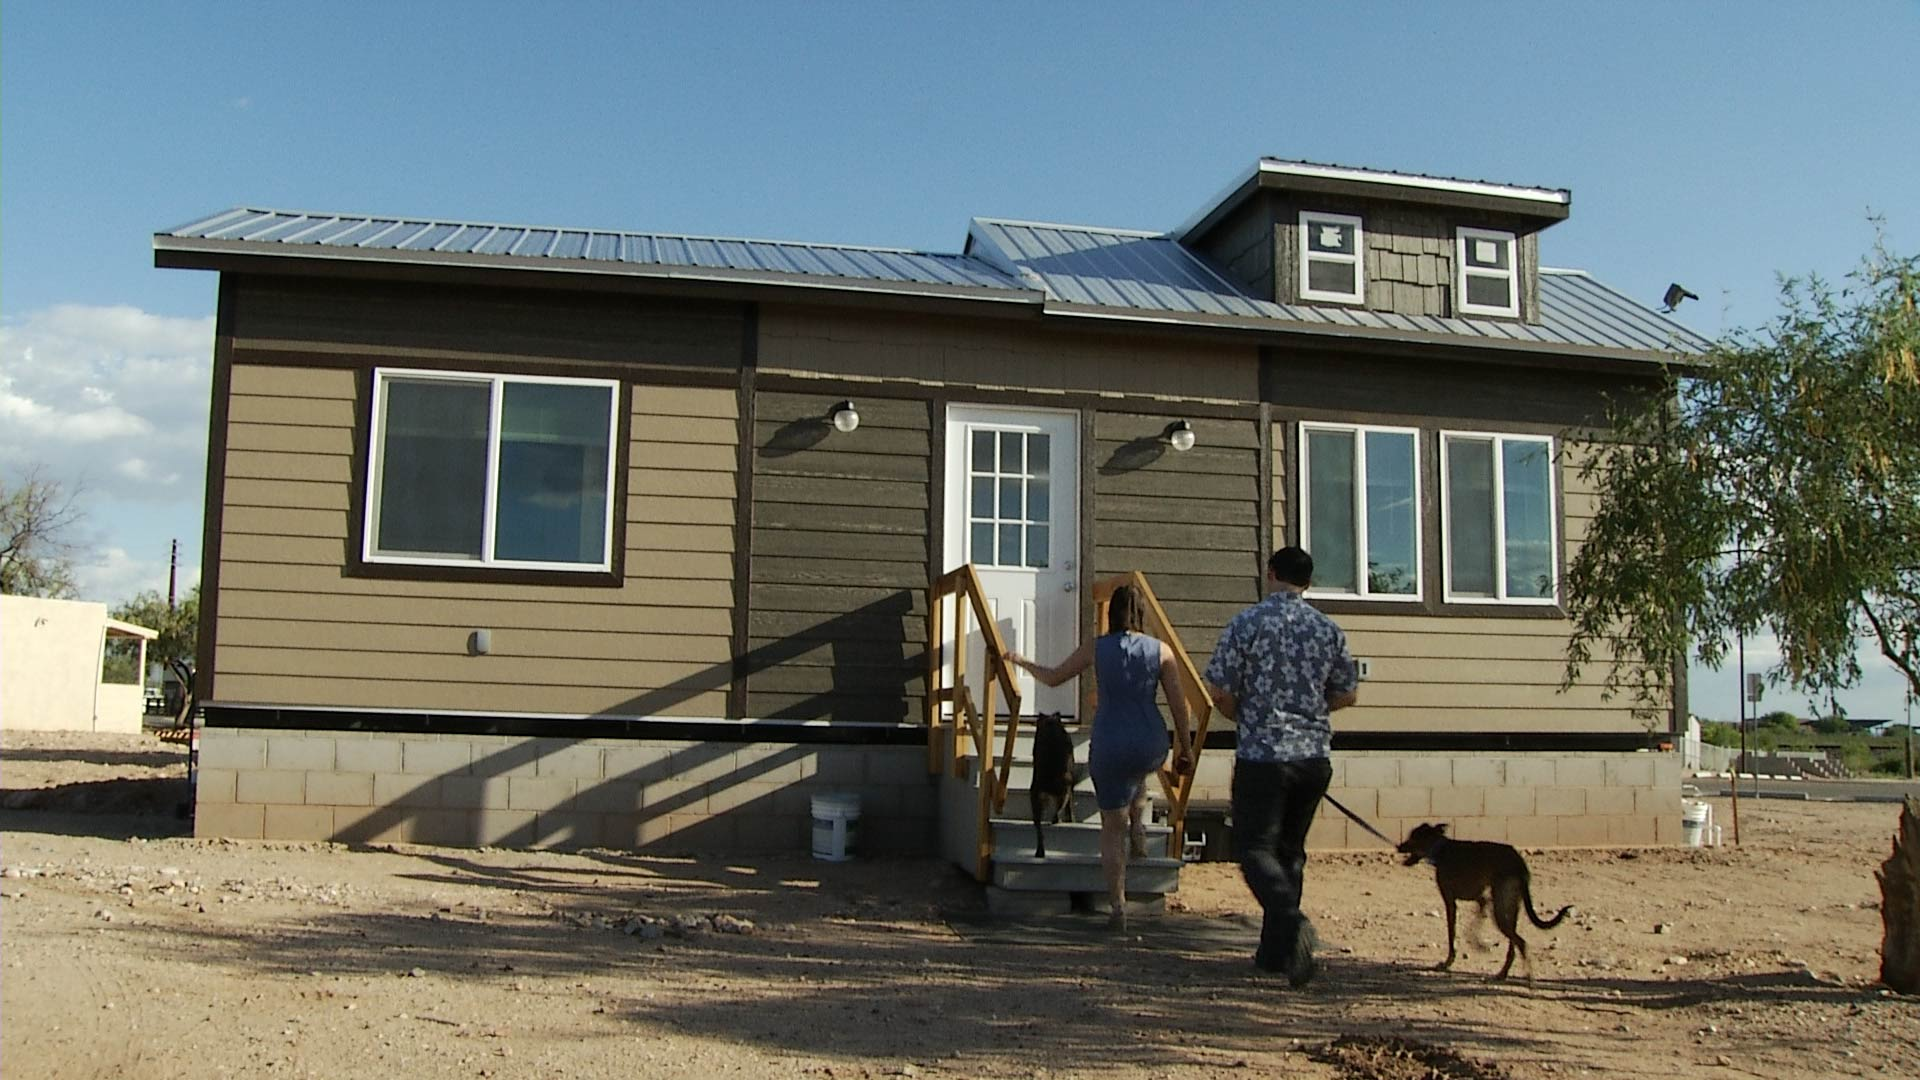 Sydney Scharer, a teacher in Vail, and Simon Stickworth walk into their tiny home they are renting as part of an initiative by the Vail School District to provide employees with affordable housing in the community.